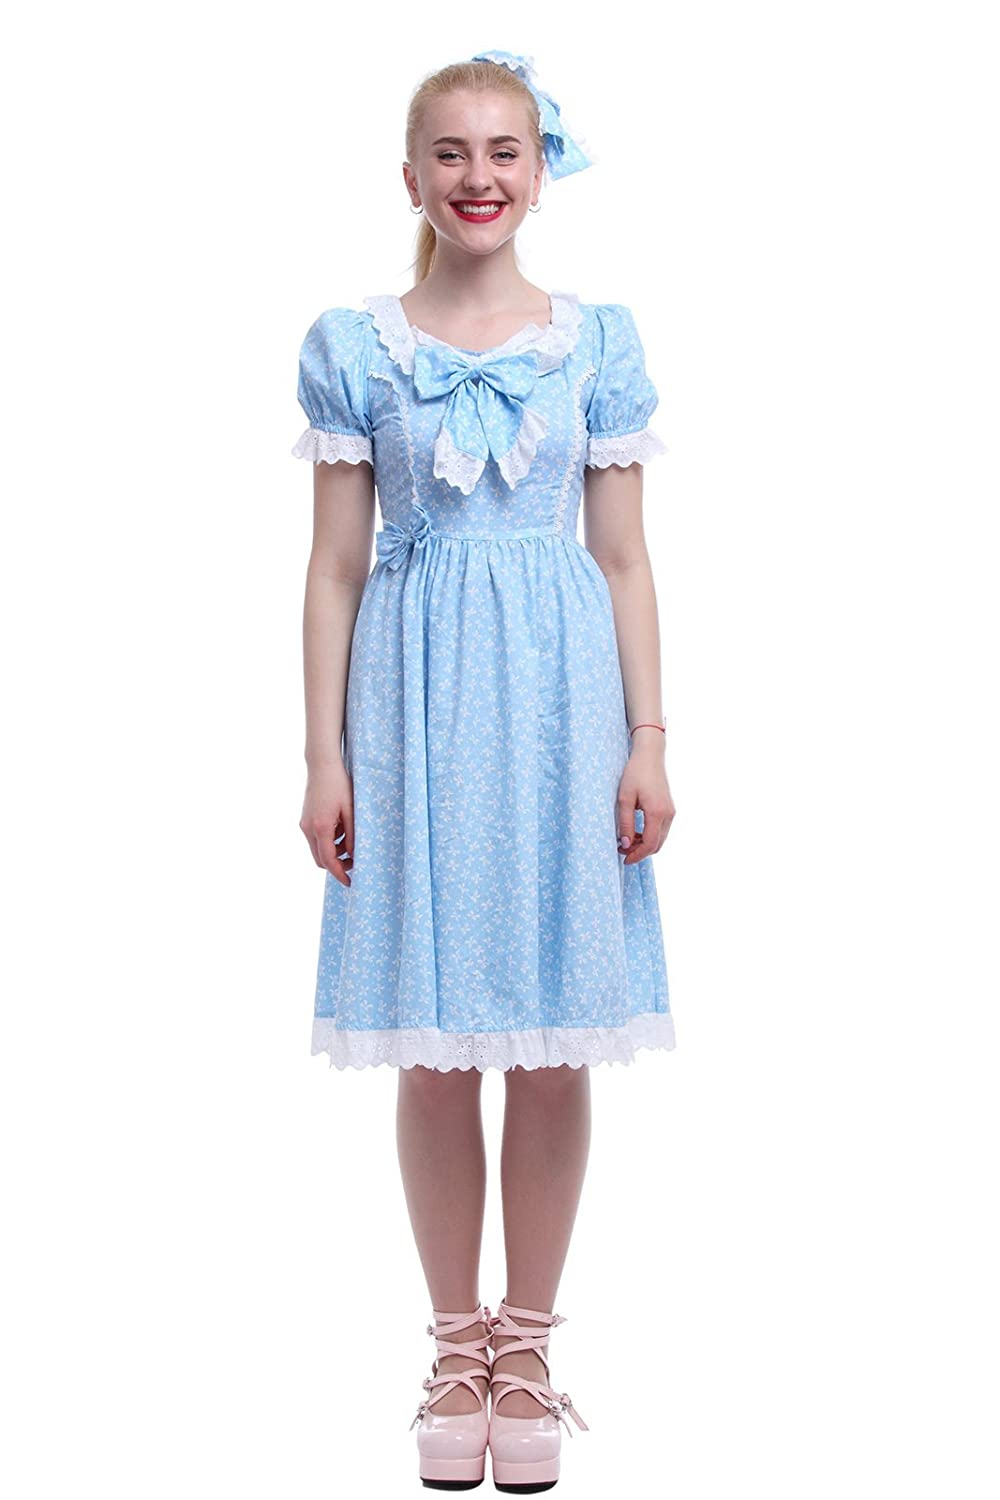 Vintage Style Children's Clothing: Girls, Boys, Baby, Toddler Nuoqi Womens Sweet Lolita Dress Blue Cotton Bow Puff Skirts Costumes  AT vintagedancer.com